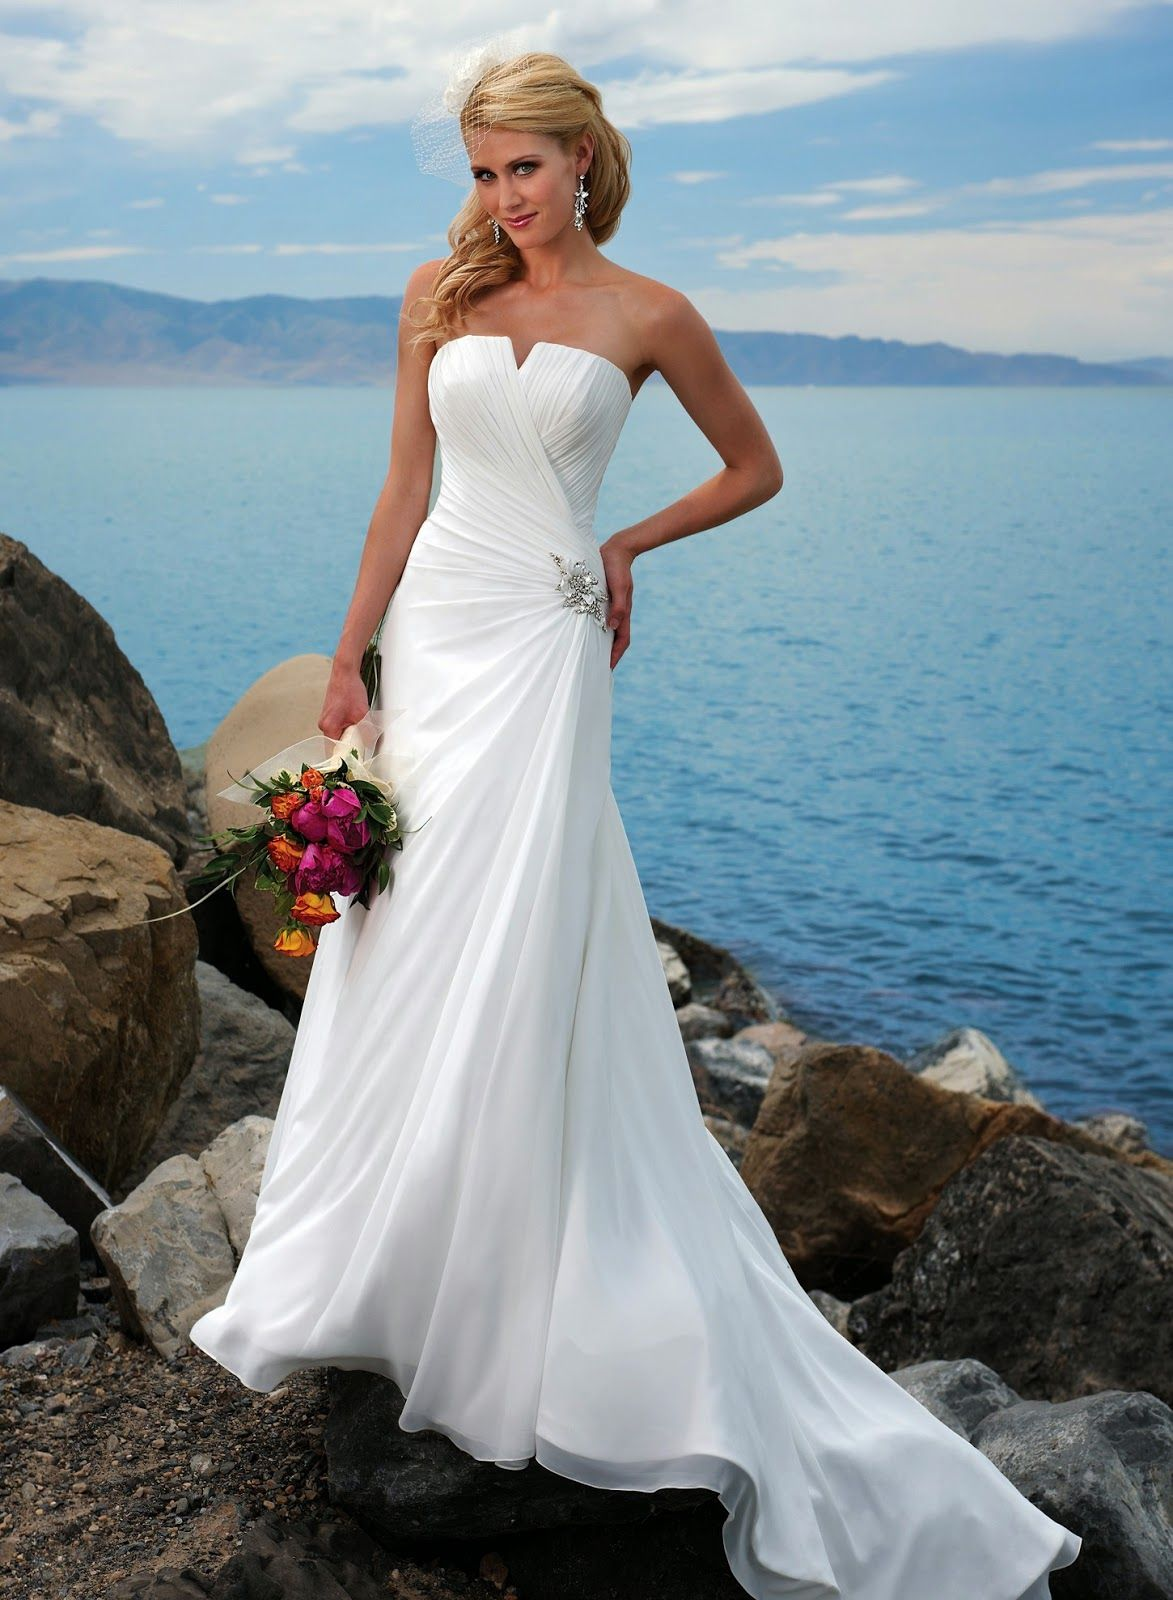 100+ Wedding Dresses In Hawaii - Plus Size Dresses for Wedding Guest ...